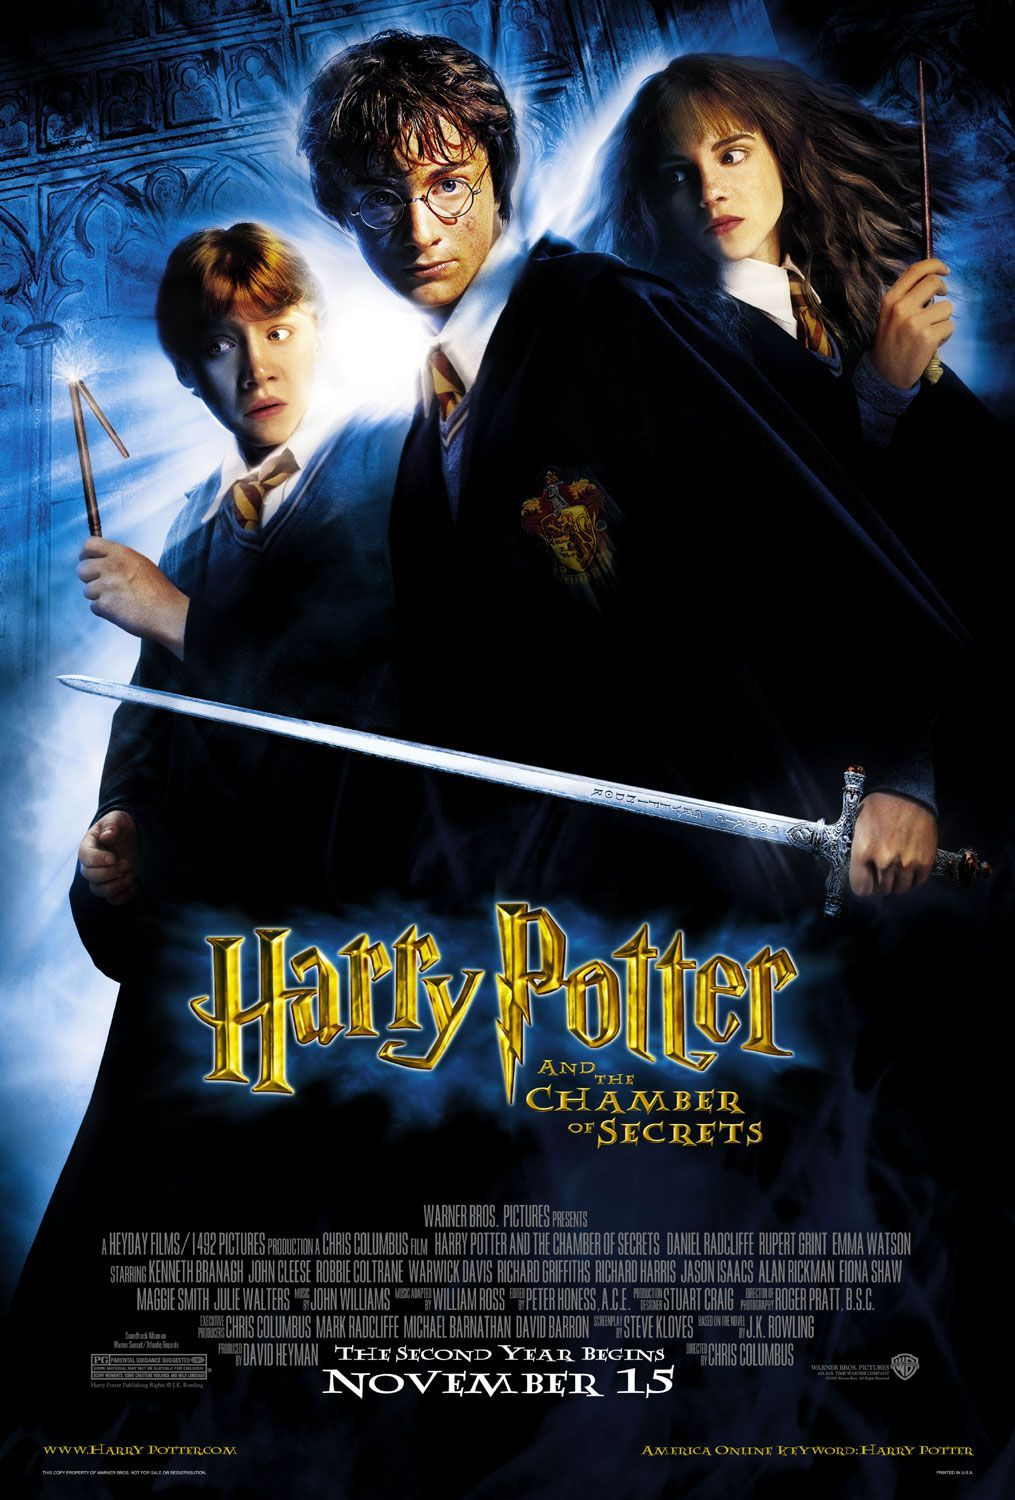 MoviE Picture: Harry Potter and the Chamber of Secrets [2002]